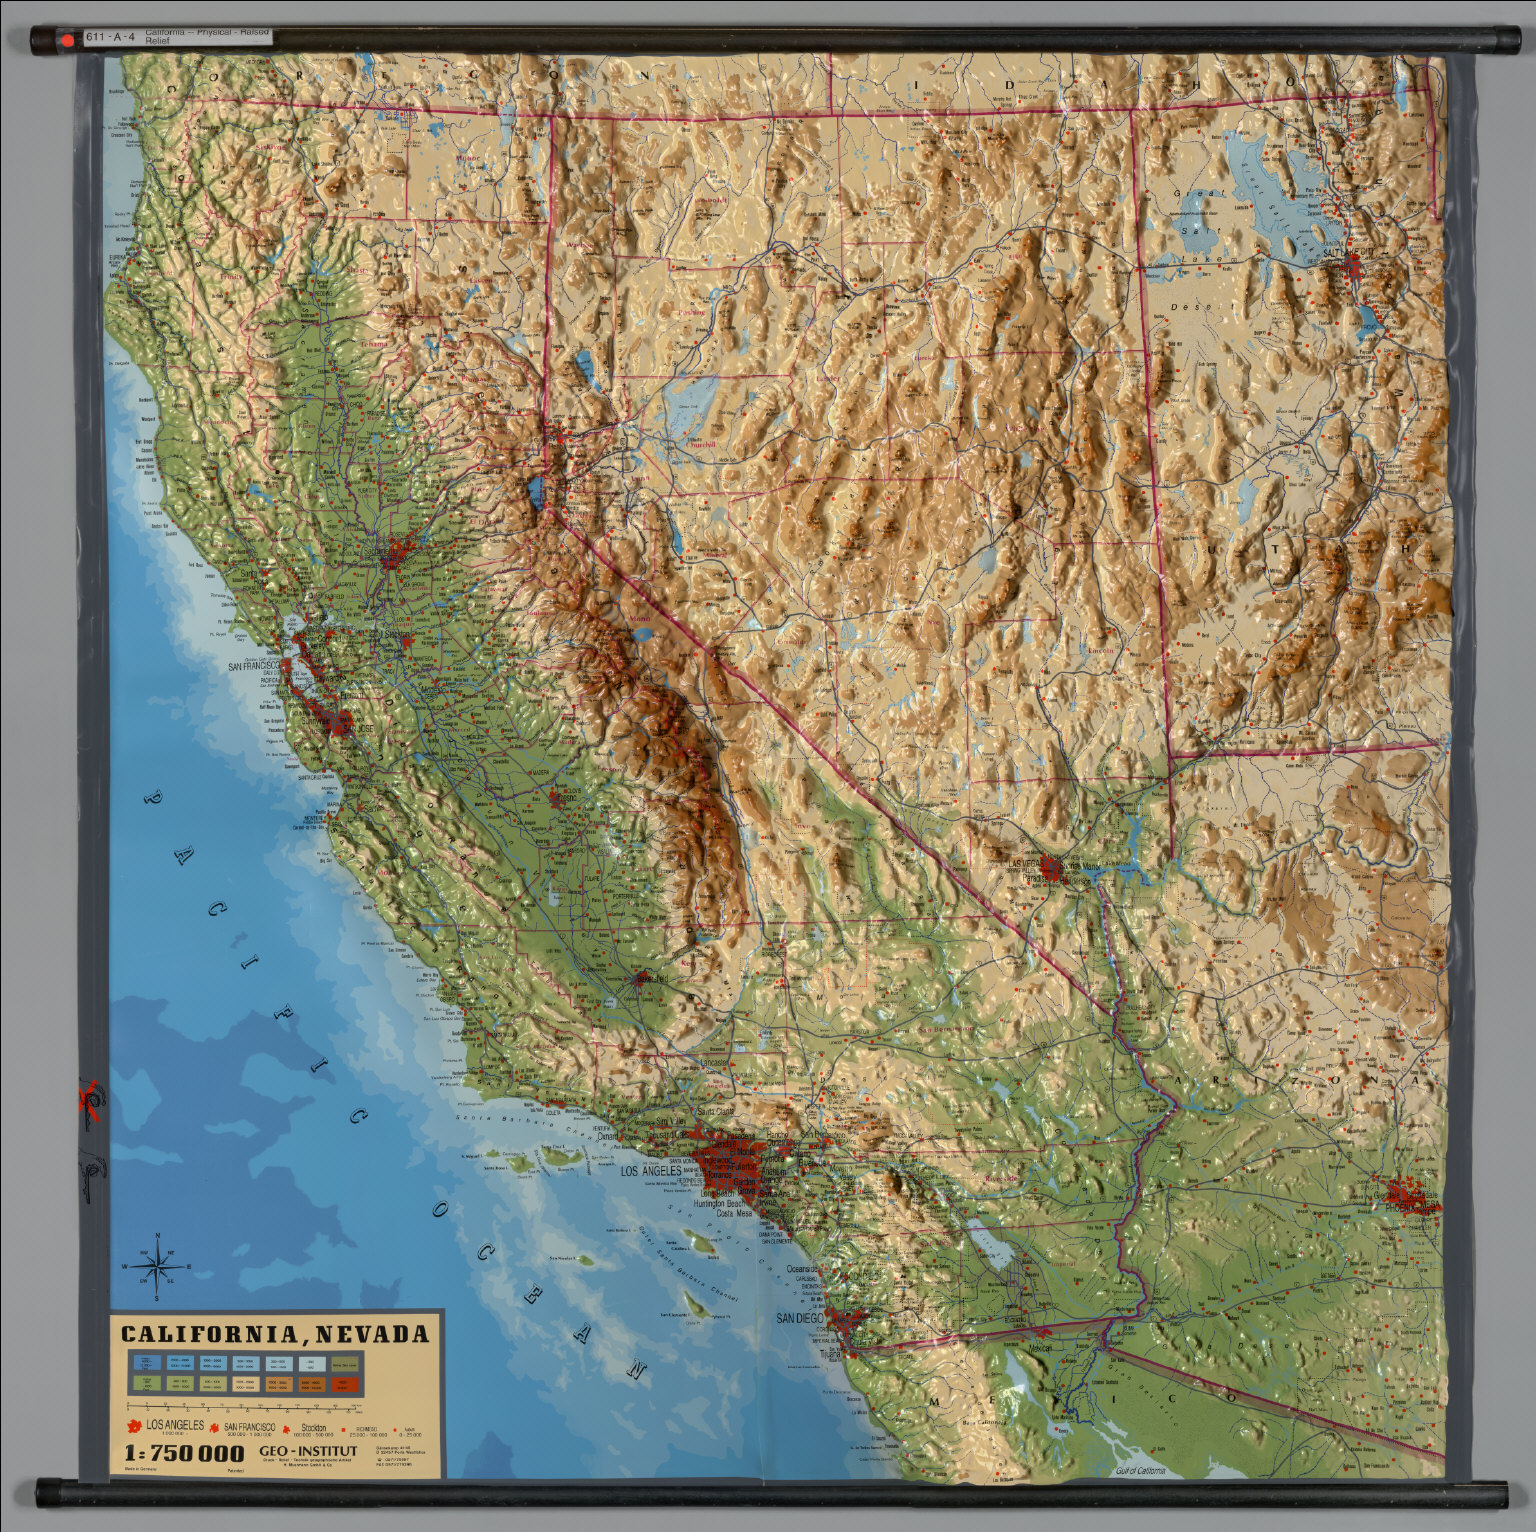 California Physical Raised Relief David Rumsey Historical - Raised relief map